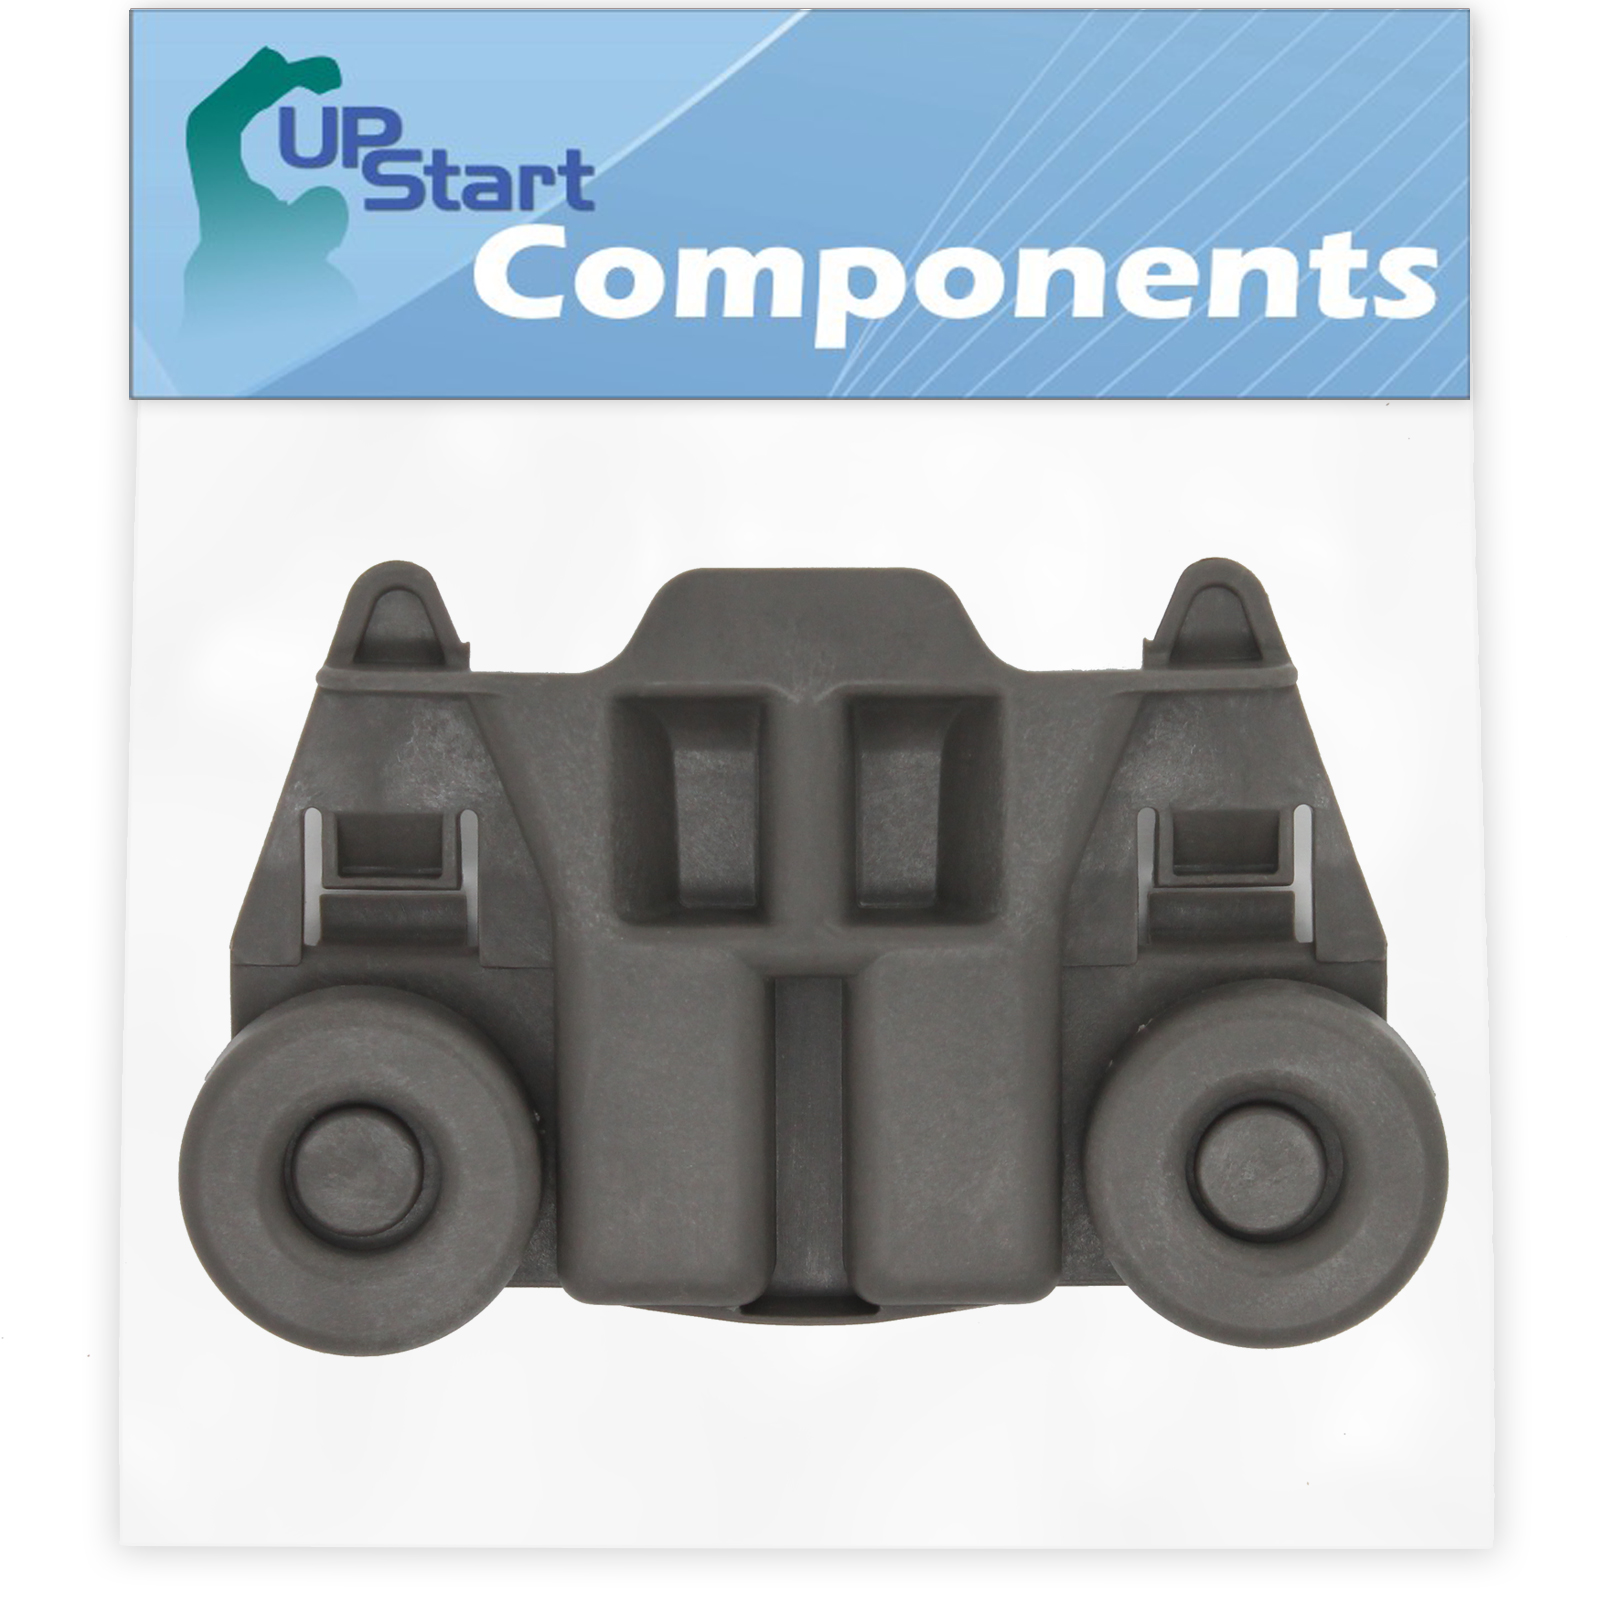 W10195417 Dishwasher Wheel Replacement for Kenmore / Sears 66513923K013 Dishwasher - Compatible with WPW10195417 Dishwasher Rack Roller - UpStart Components Brand - image 2 of 4